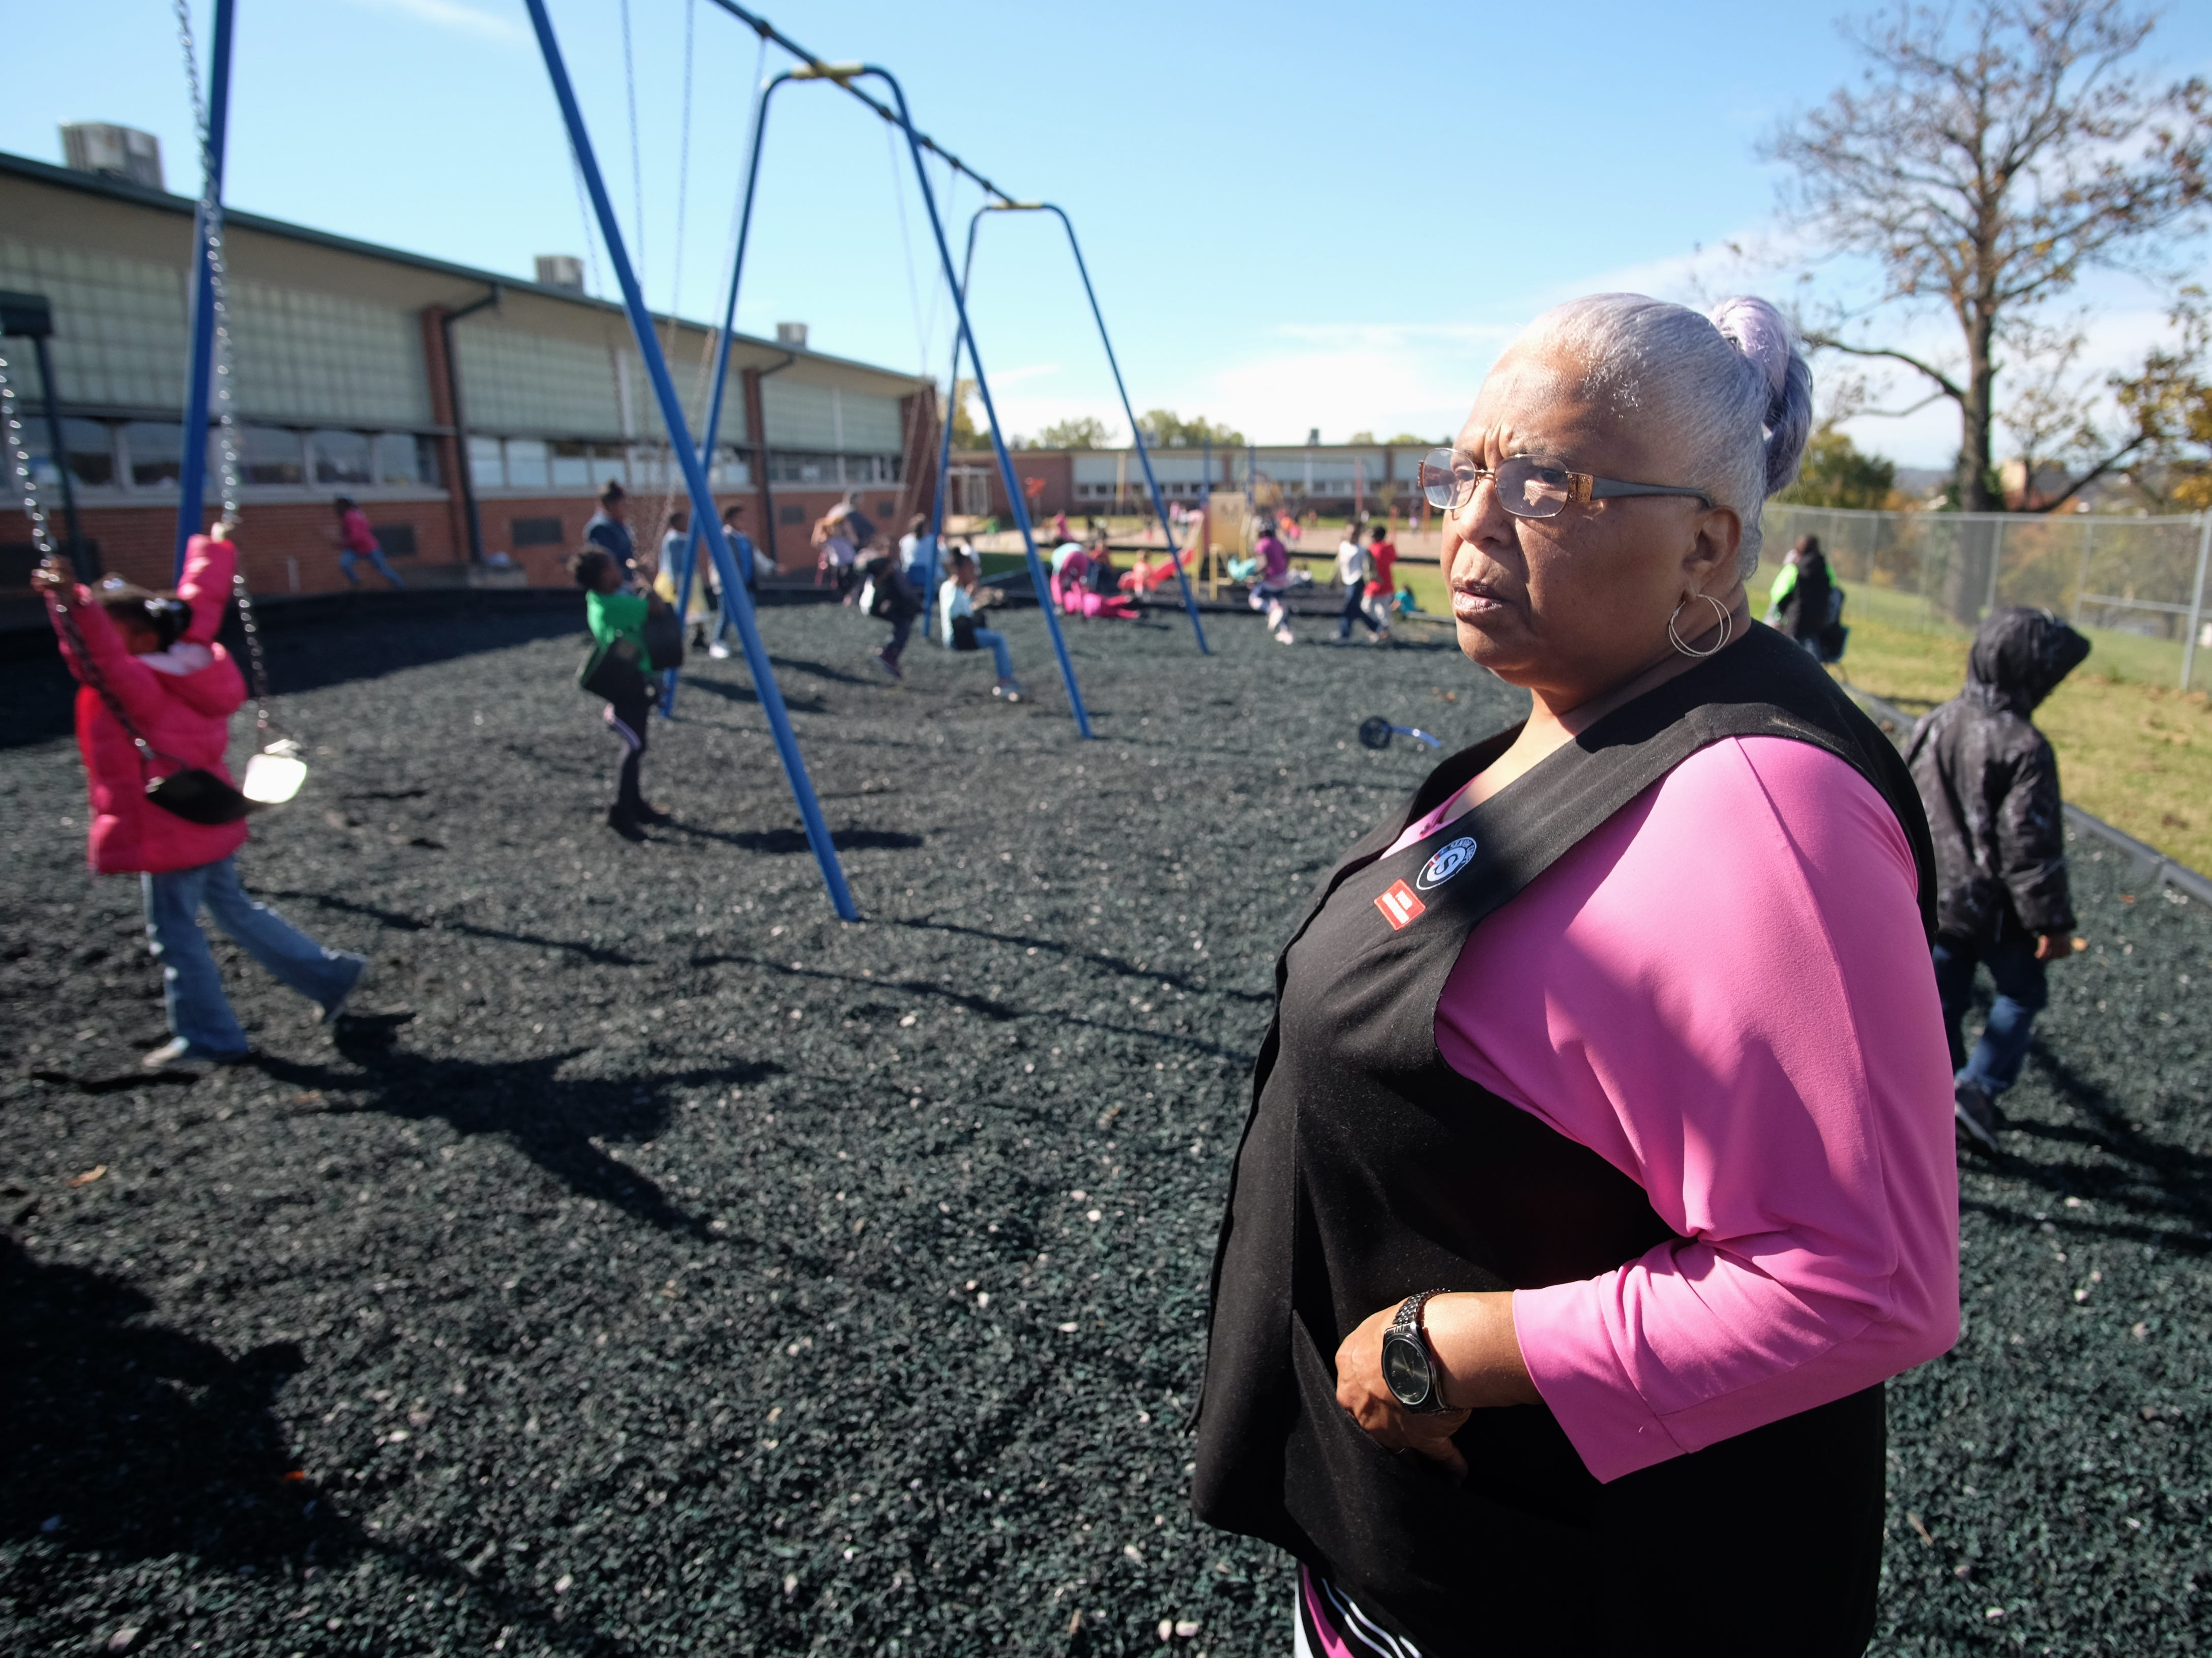 Foster Grandparent Lena Morrison watches over her kindergartners during recess at Green Magnet Academy on Wednesday, November 7, 2018 in Knoxville. Morrison has been serving as a Foster Grandparent along with her sister Hattie Crockett for three years in Knoxville.